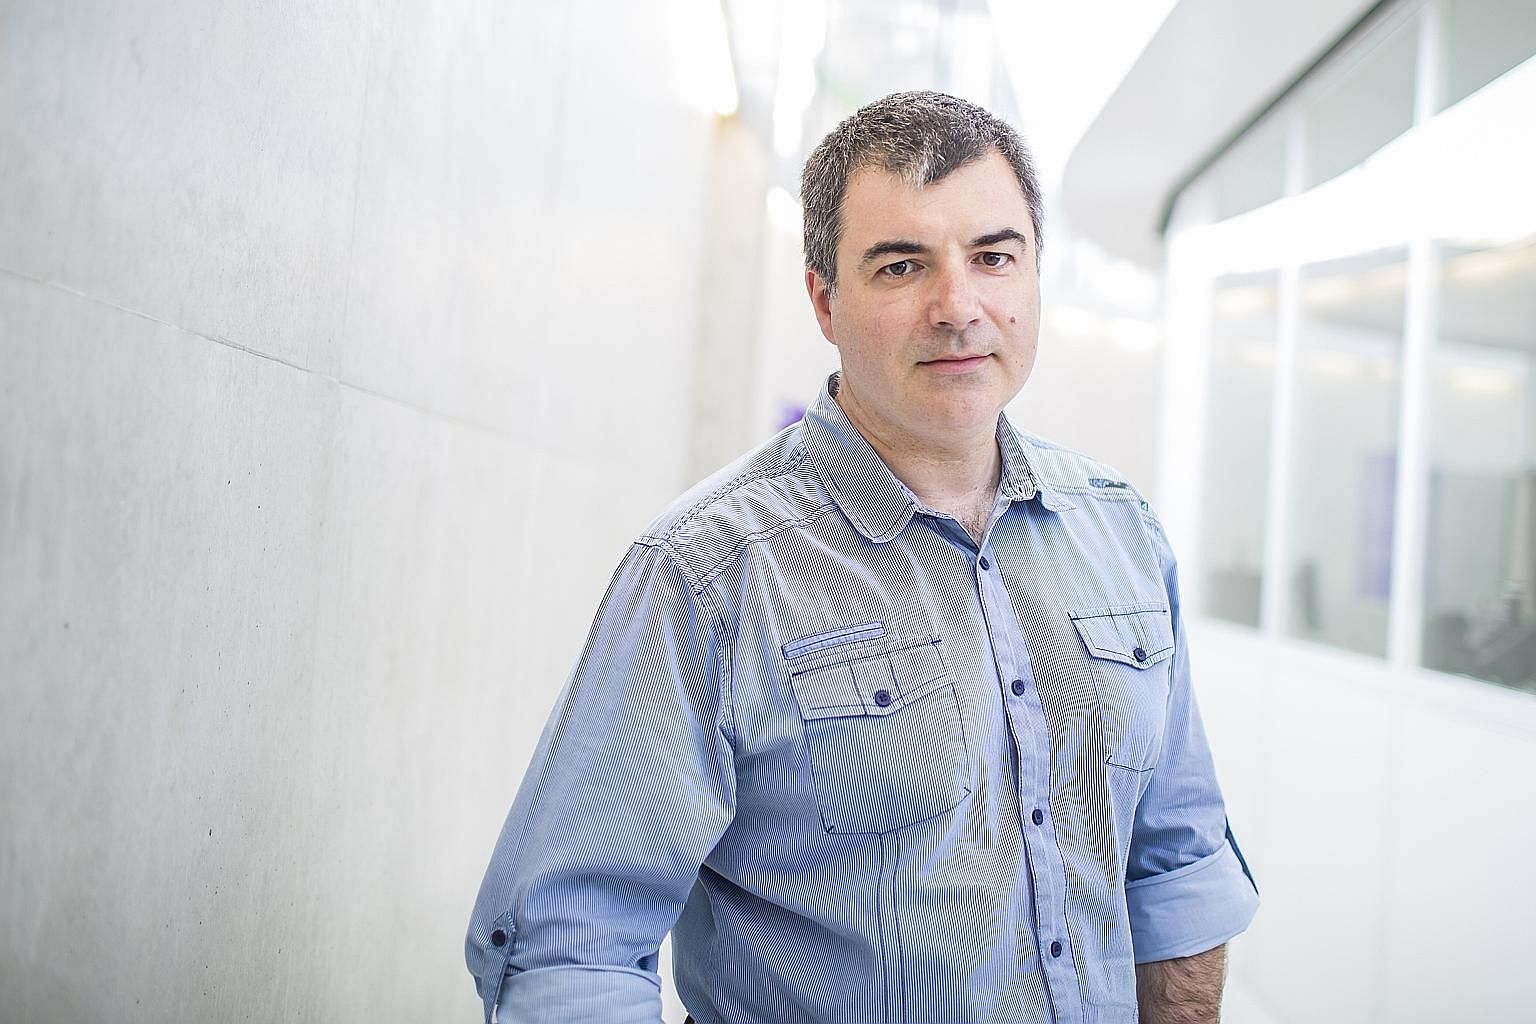 Professor Konstantin Novoselov (above) and fellow researcher Andre Geim were awarded the Nobel Prize for their groundbreaking achievements in graphene. Made up of a single layer of carbon atoms, it is the thinnest material discovered to date, yet it